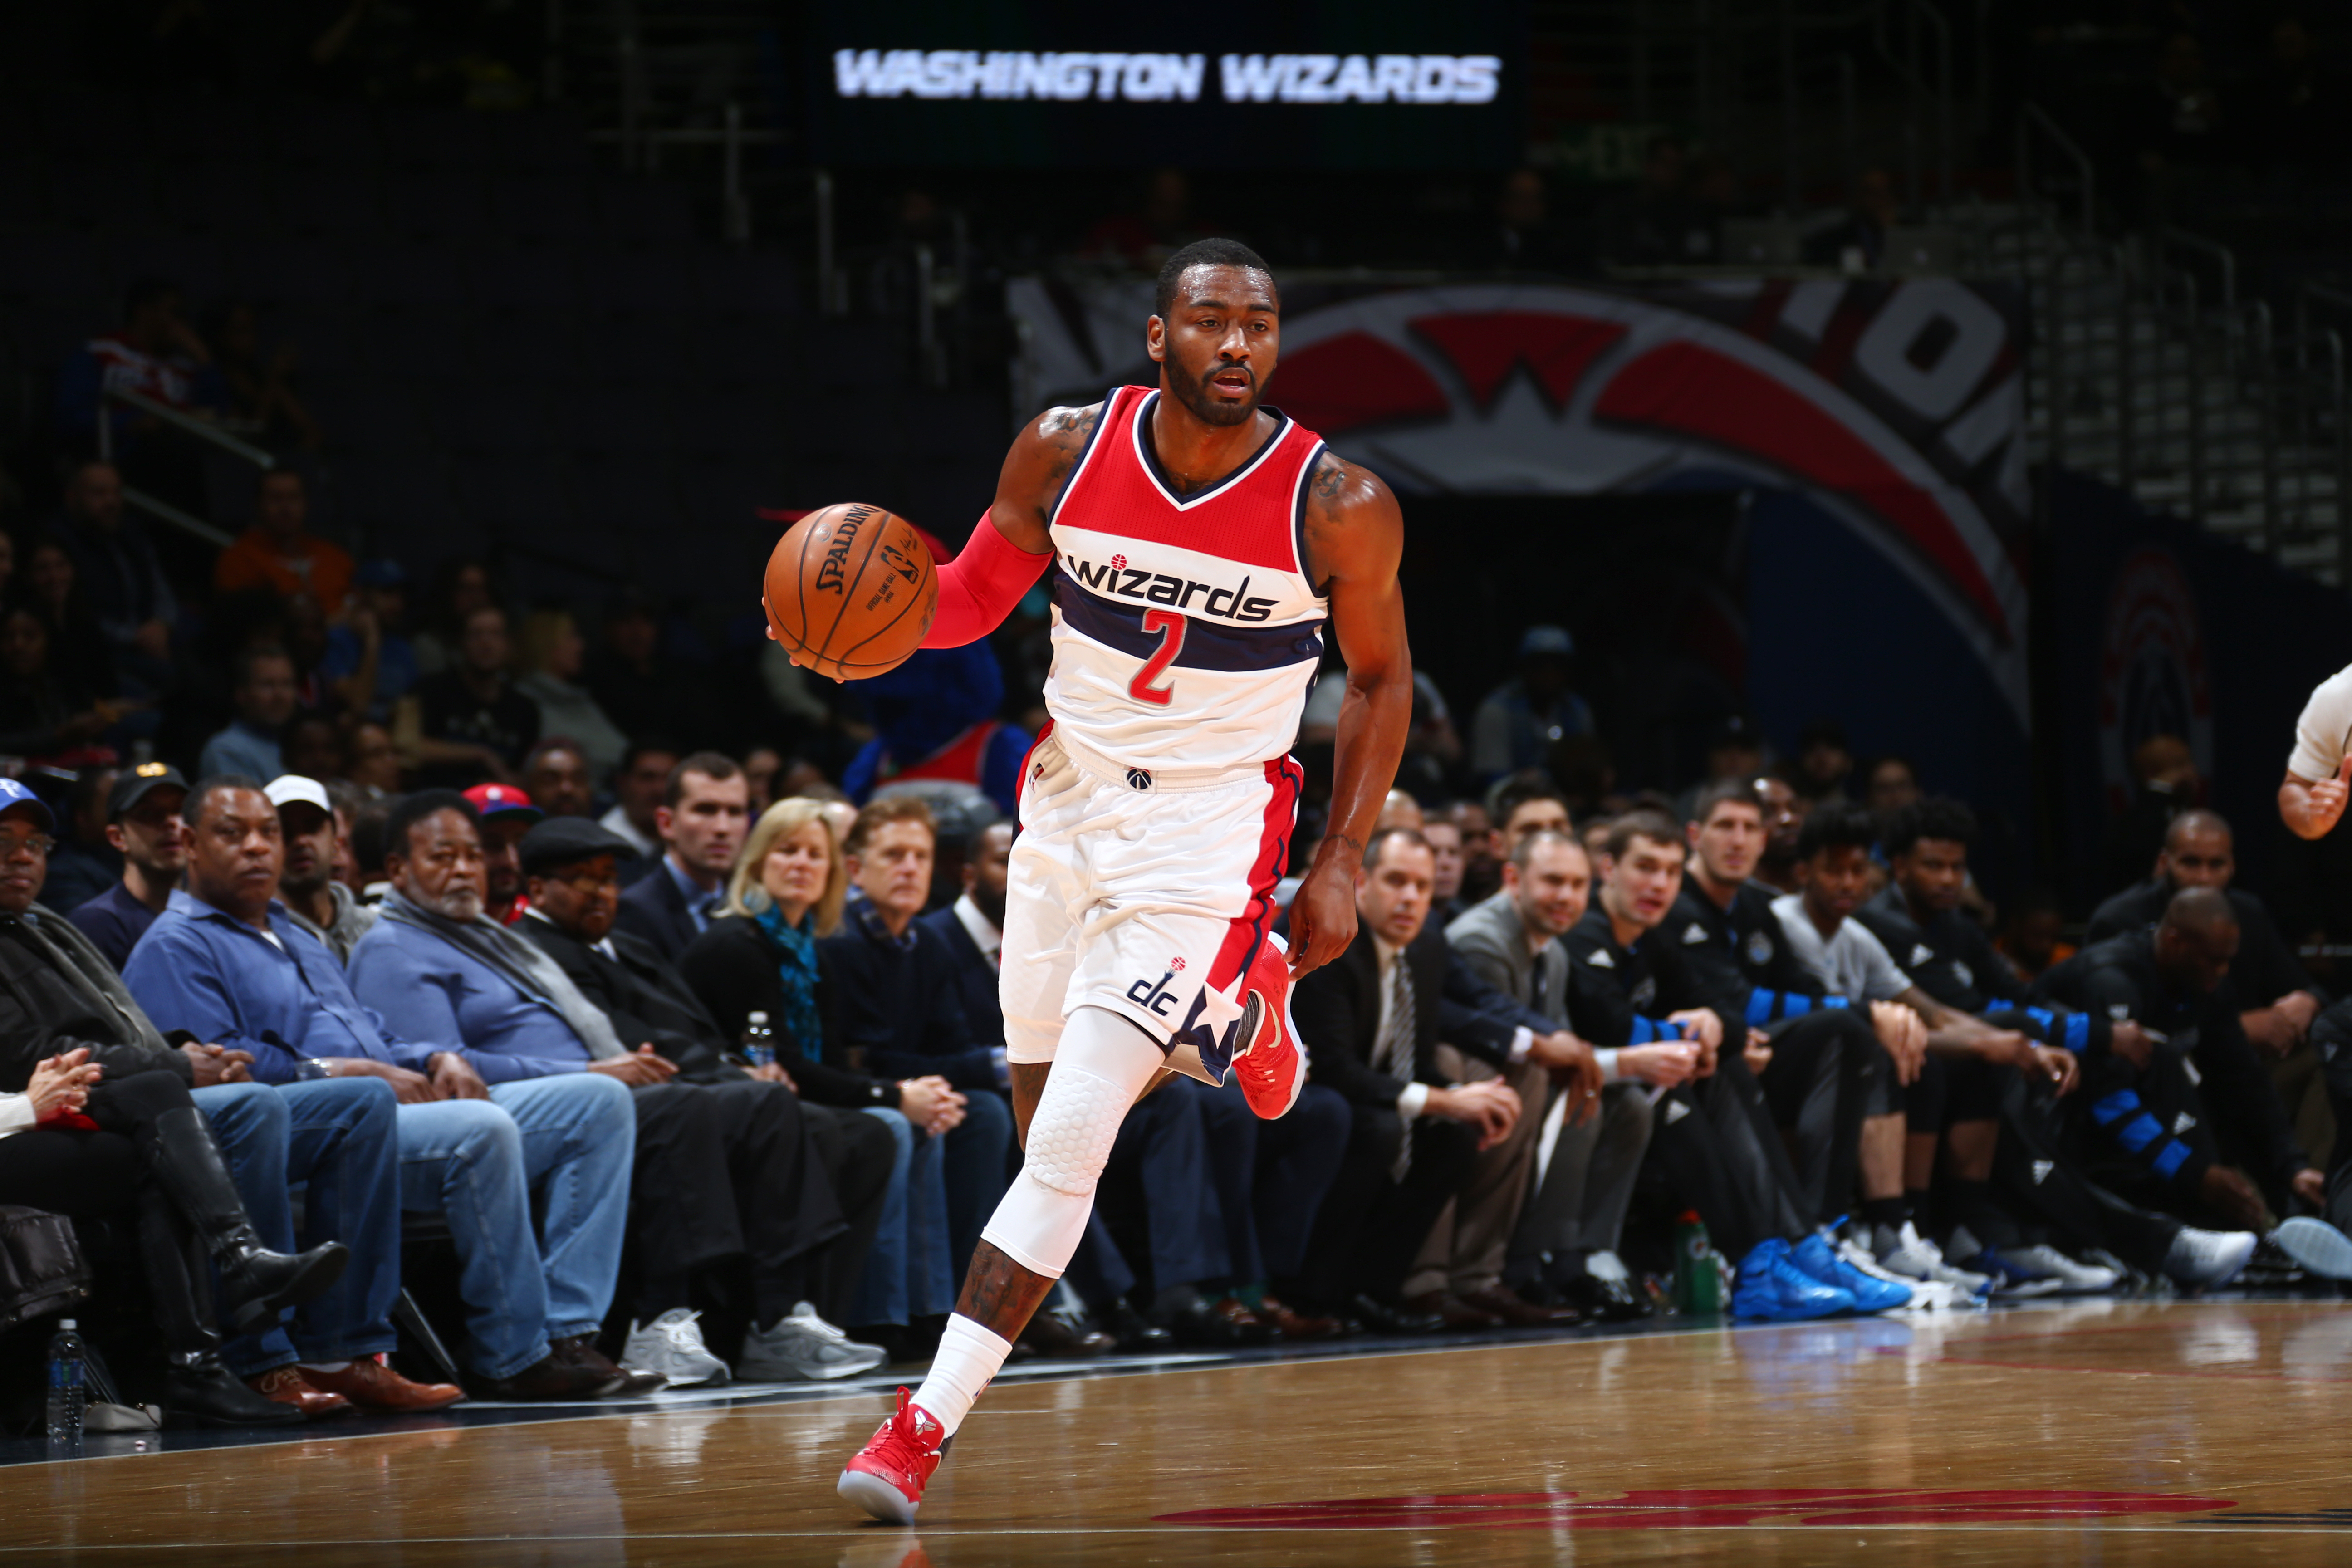 WASHINGTON, DC -DECEMBER 6:  John Wall #2 of the Washington Wizards handles the ball during a game against the Orlando Magic on December 6, 2016 at the Verizon Center in Washington, DC. NOTE TO USER: User expressly acknowledges and agrees that, by downloading and/or using this photograph, user is consenting to the terms and conditions of the Getty Images License Agreement. Mandatory Copyright Notice: Copyright 2016 NBAE (Photo by Ned Dishman/NBAE via Getty Images)